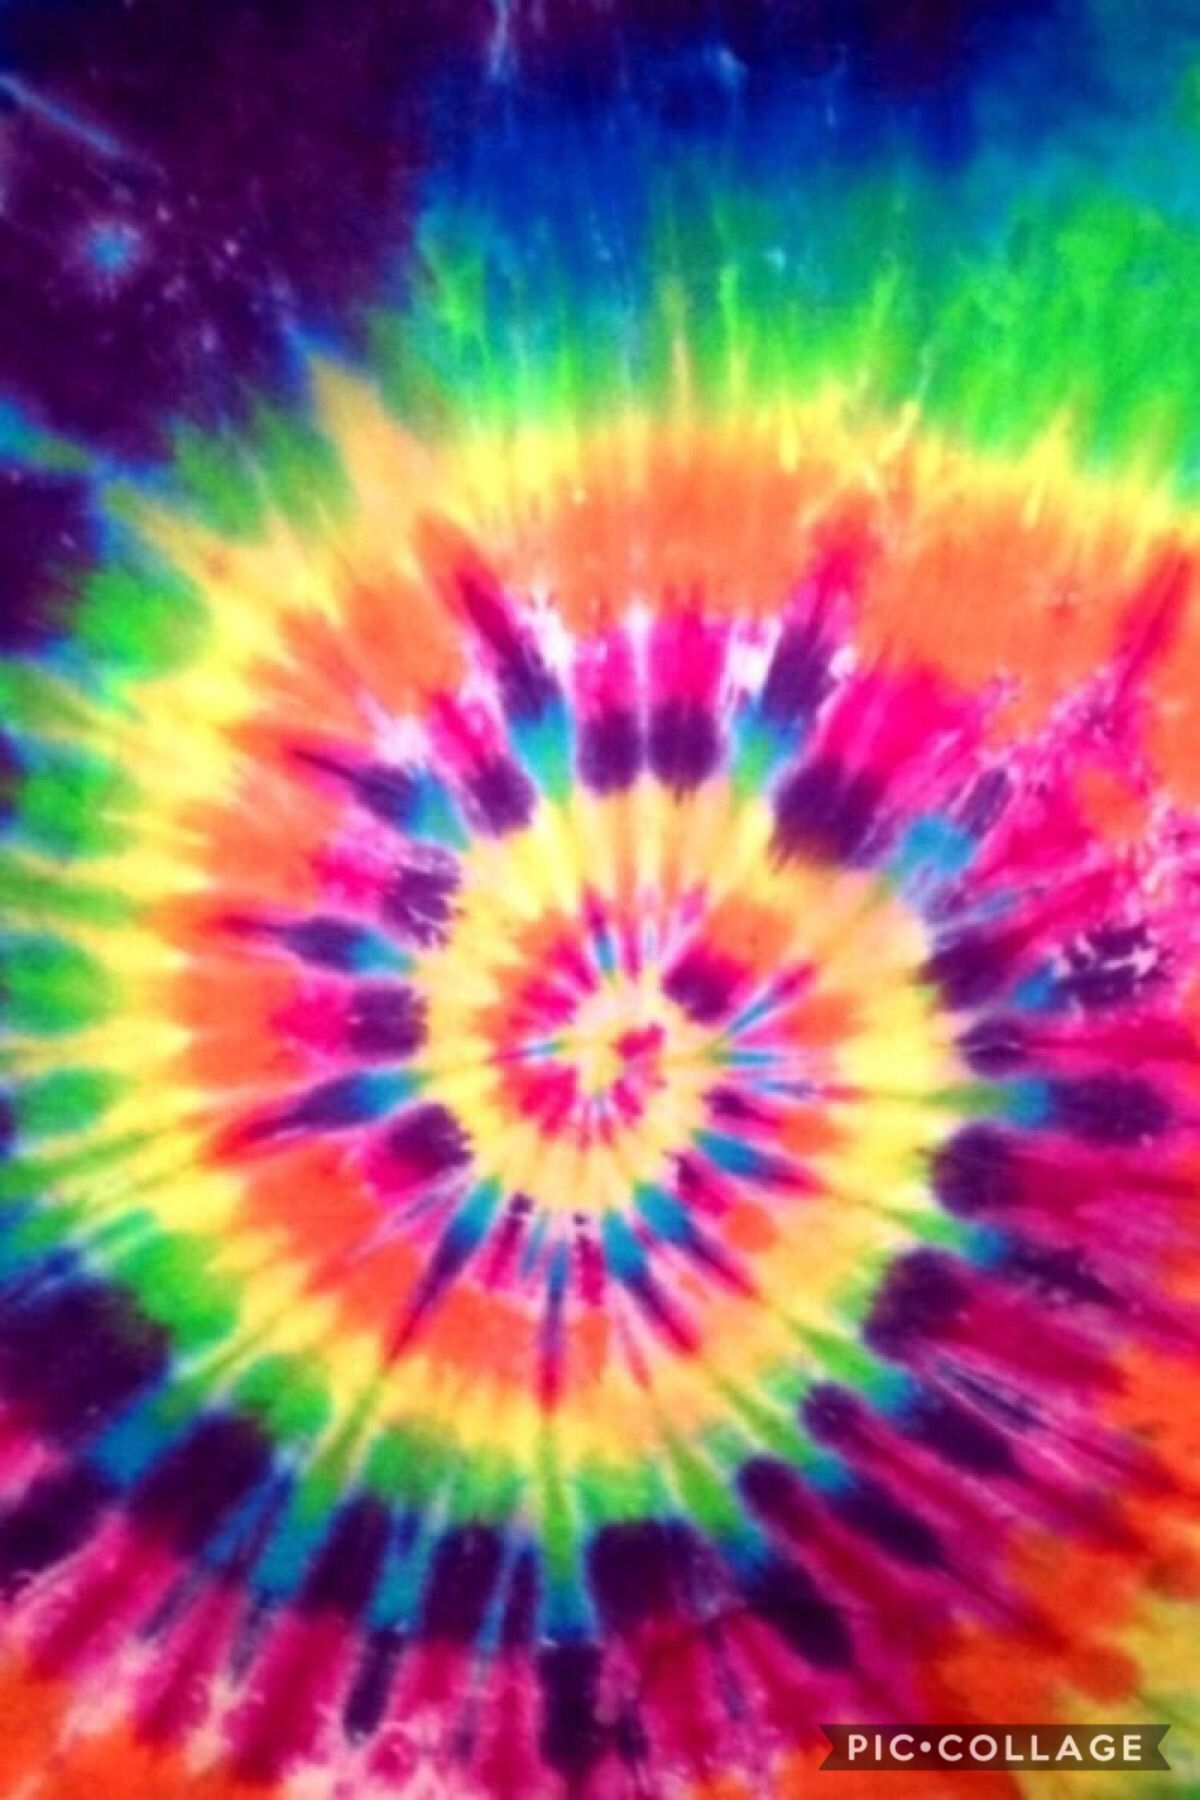 Tumblr tie dye iphone wallpaper - Explore Tie Dying Tumblr Wallpaper And More